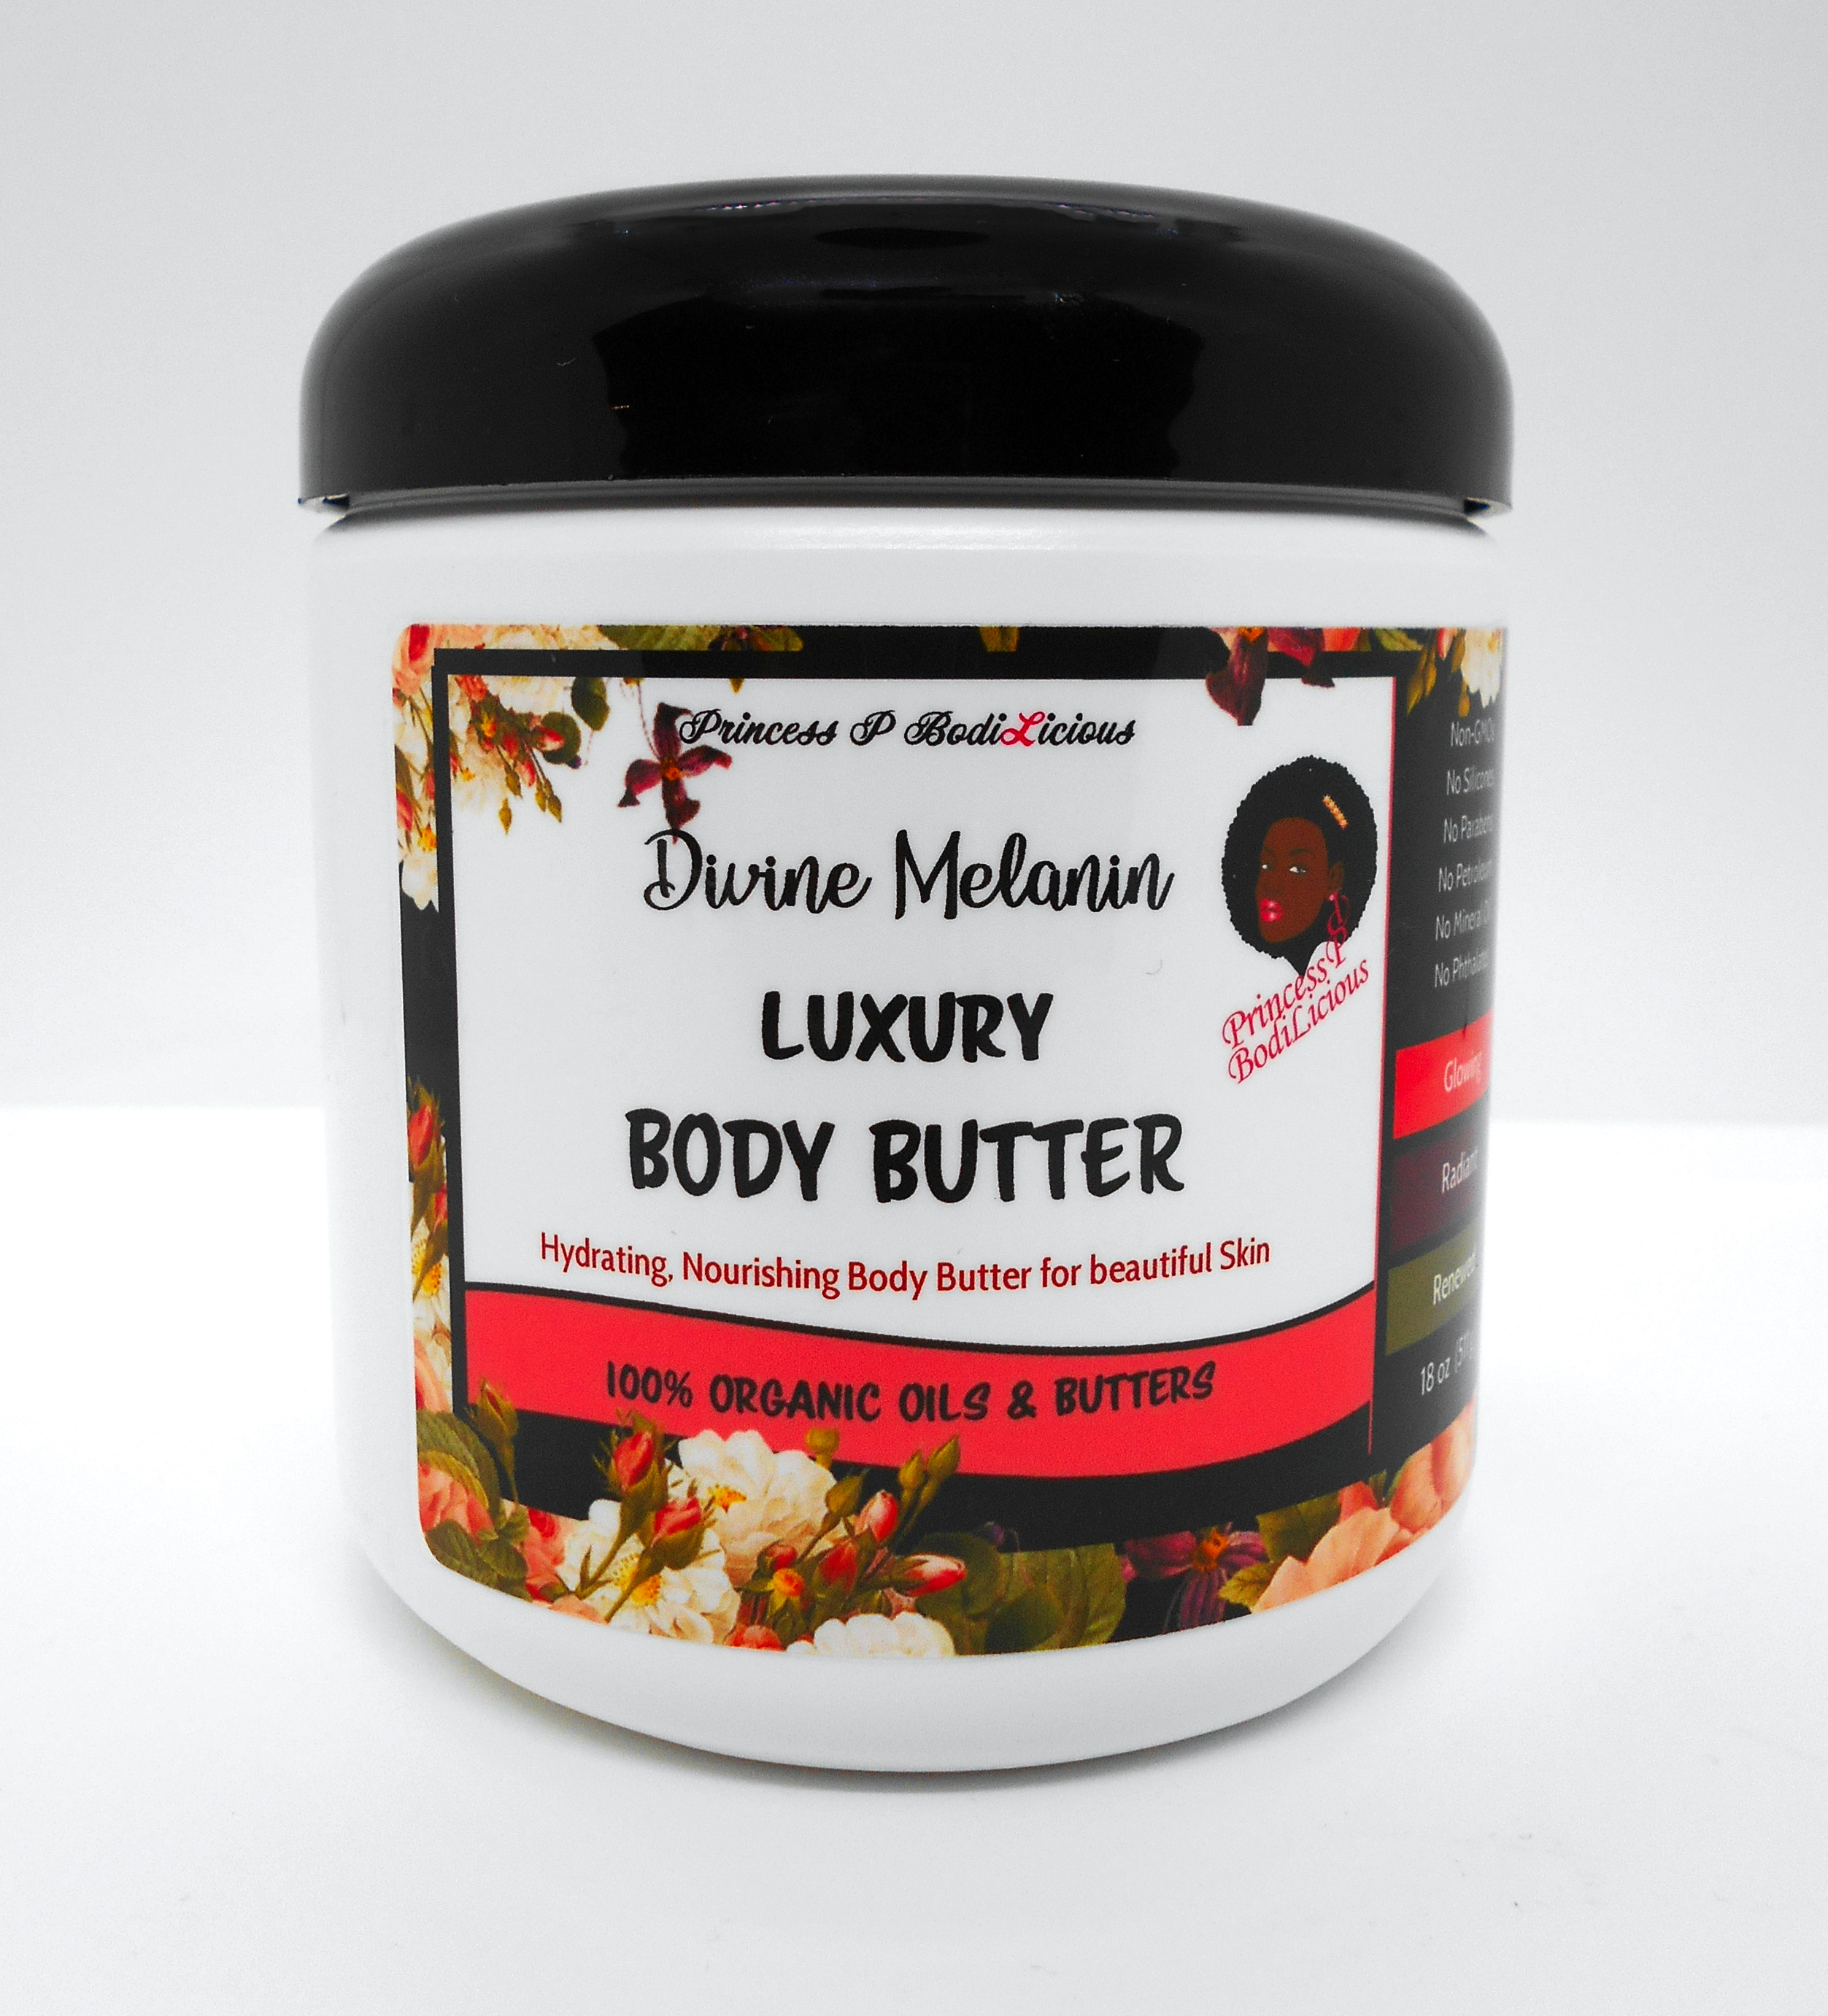 Divine Melanin Body Butter